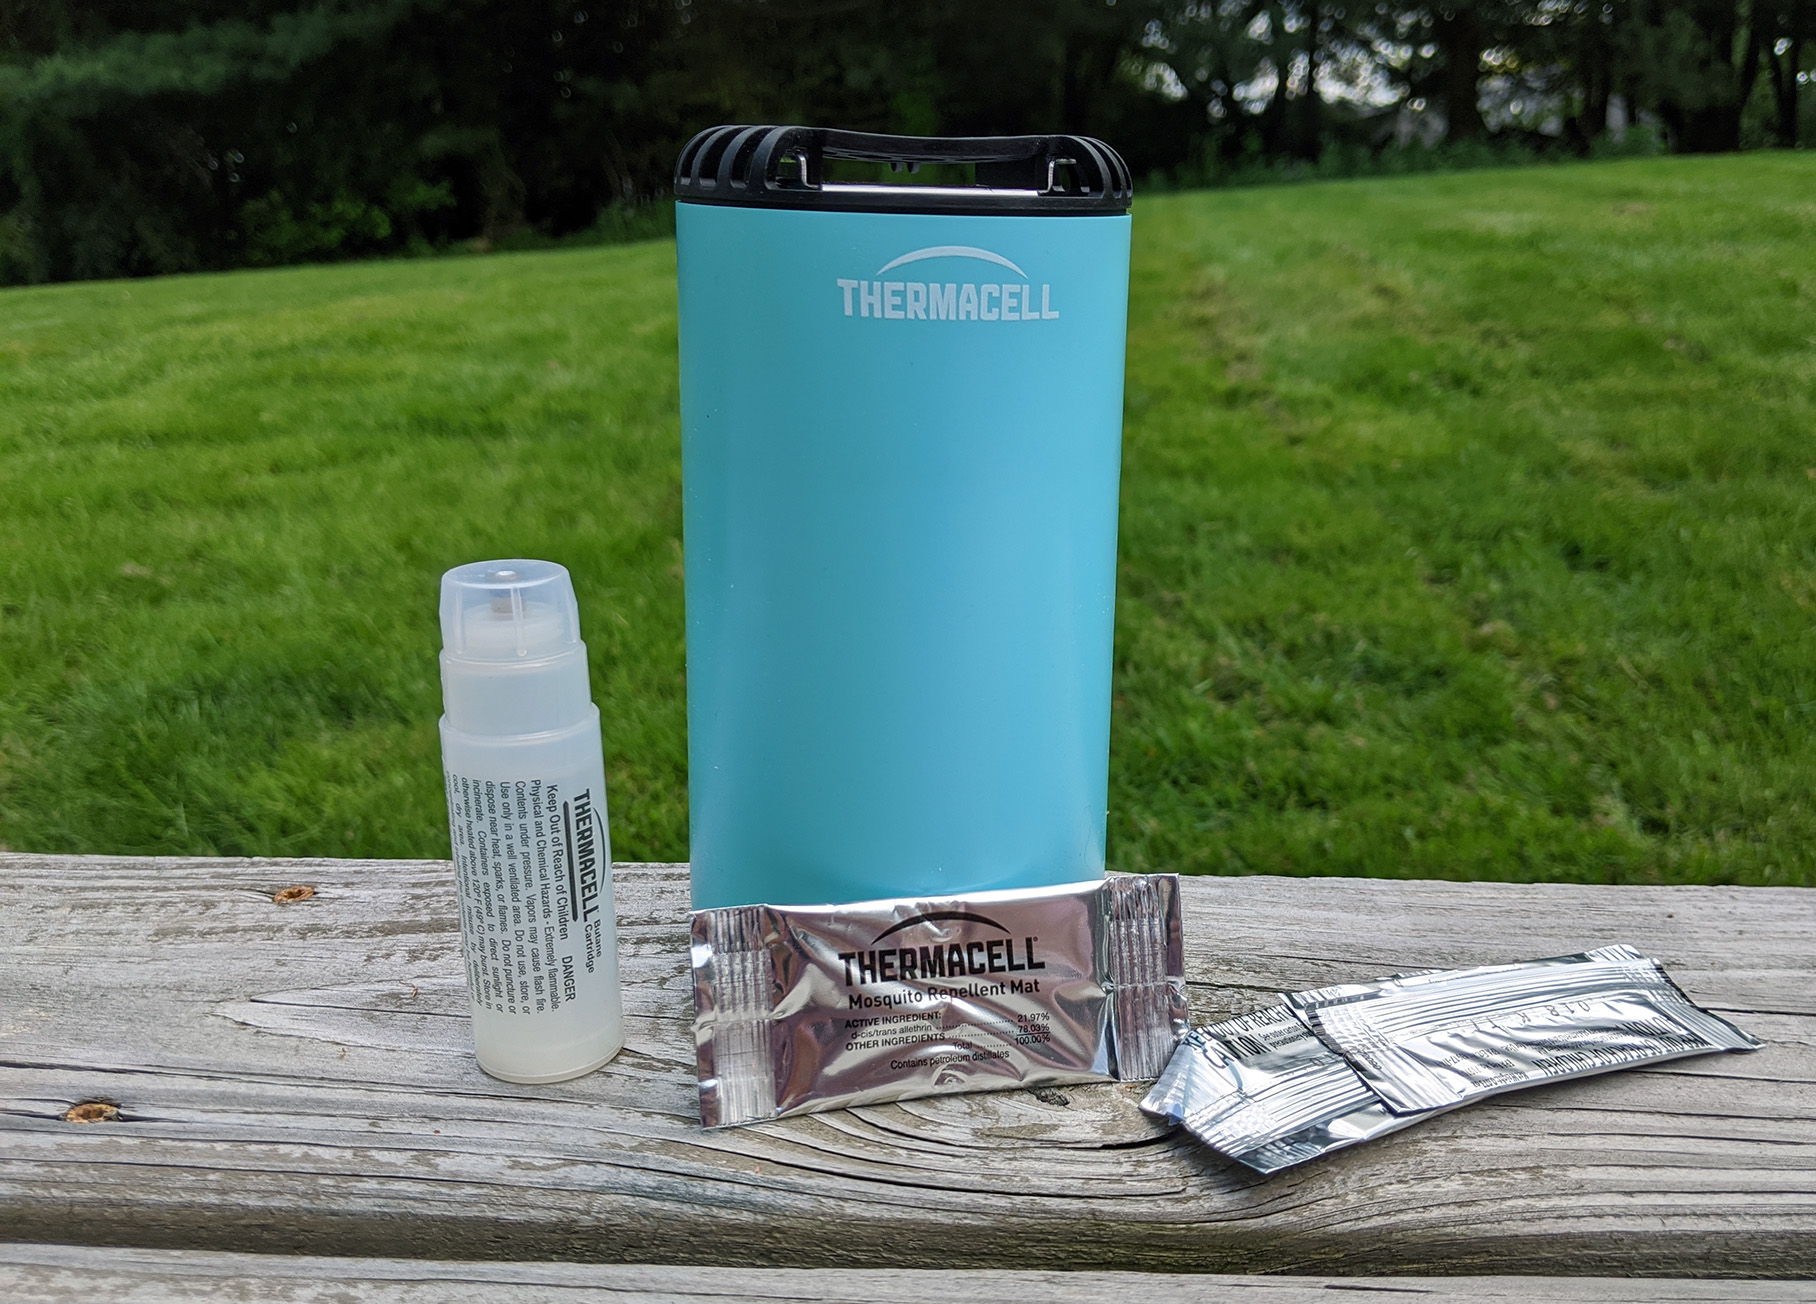 thermacell mosquito repellent unboxed